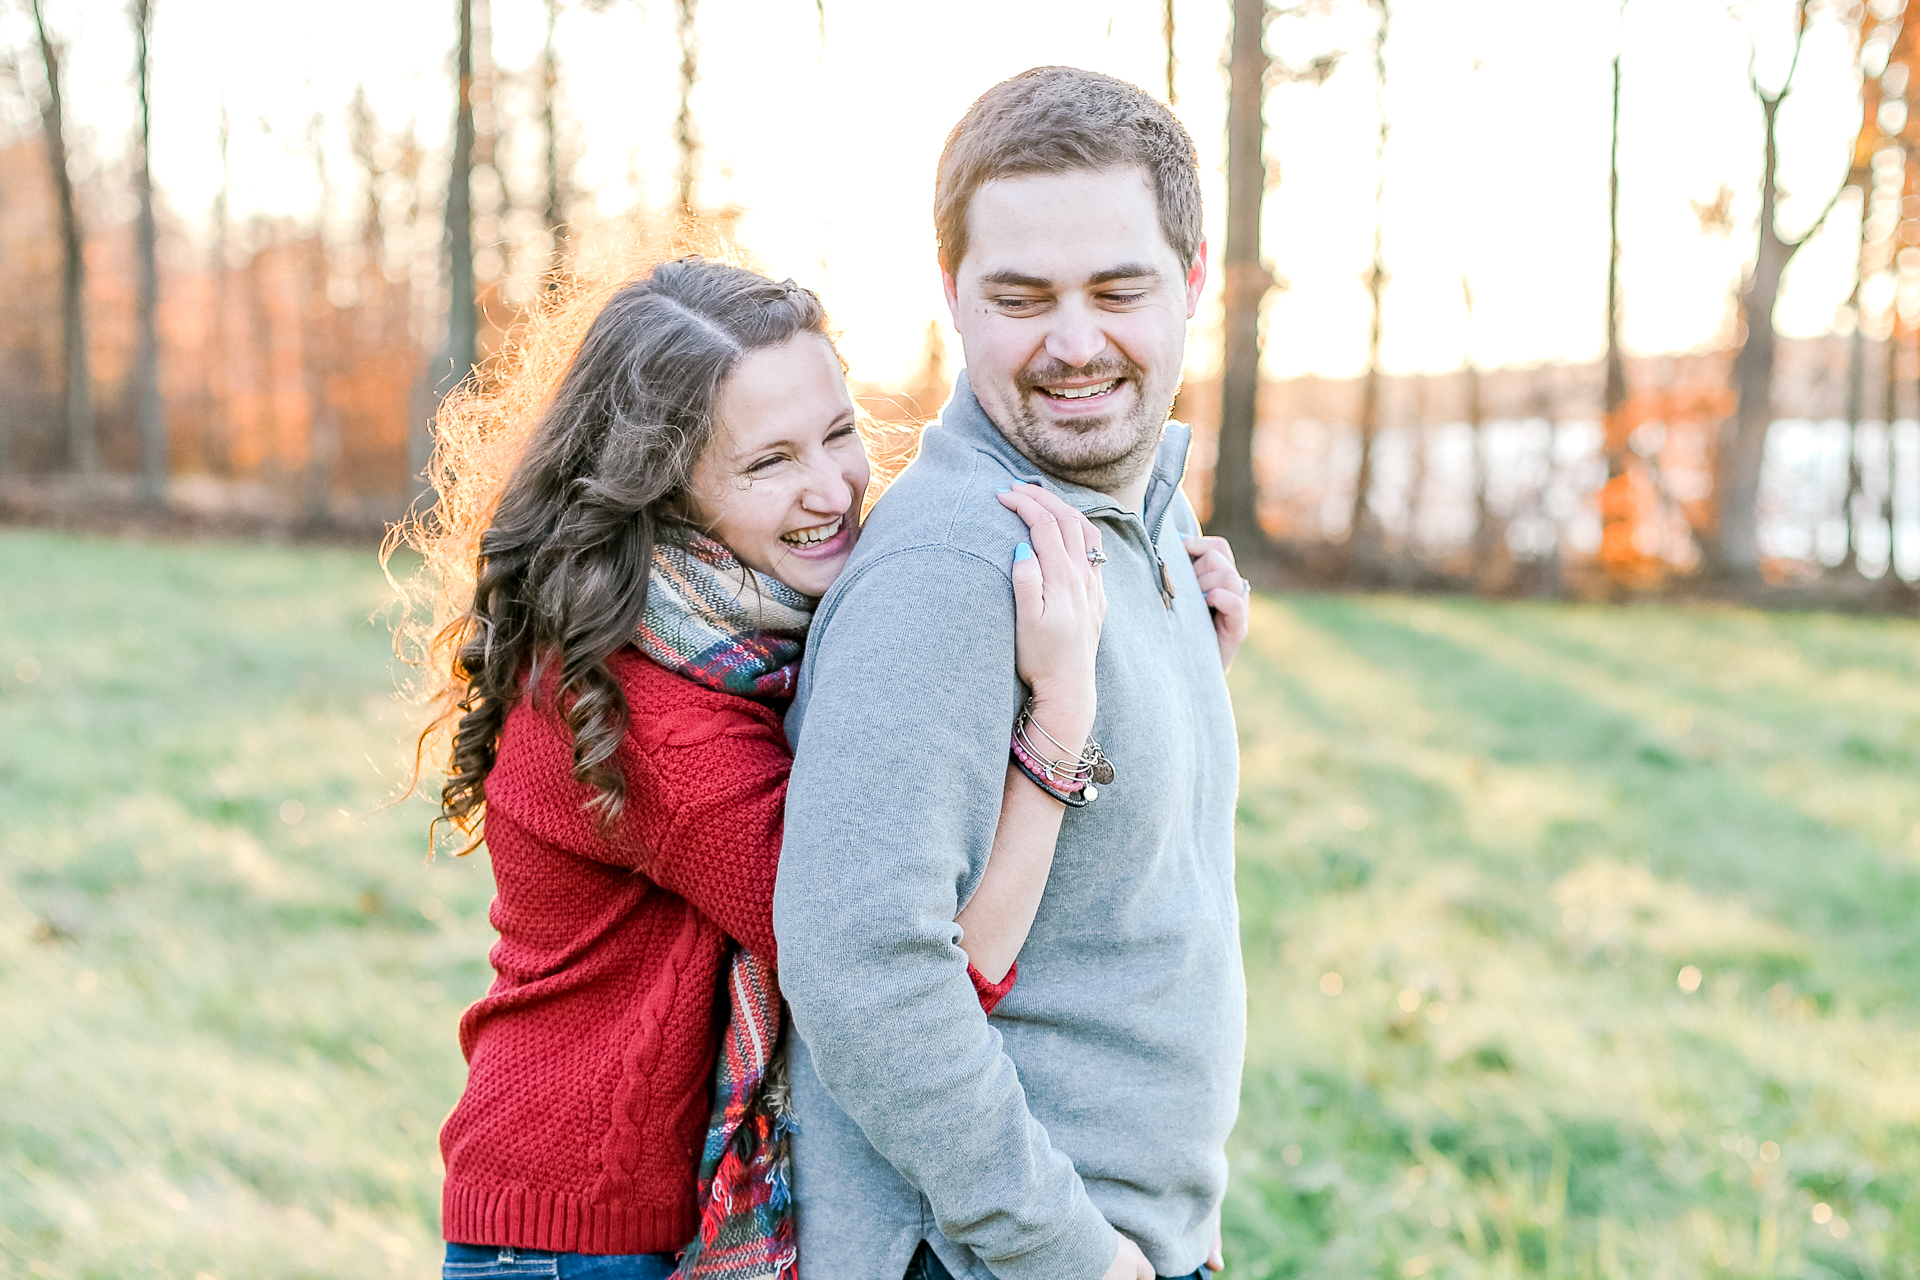 Bucks county Peace Valley Park Doylestown Lehigh Valley fall windy engagement session wedding and lifestyle photographer Lytle Photo Co (100 of 109).jpg